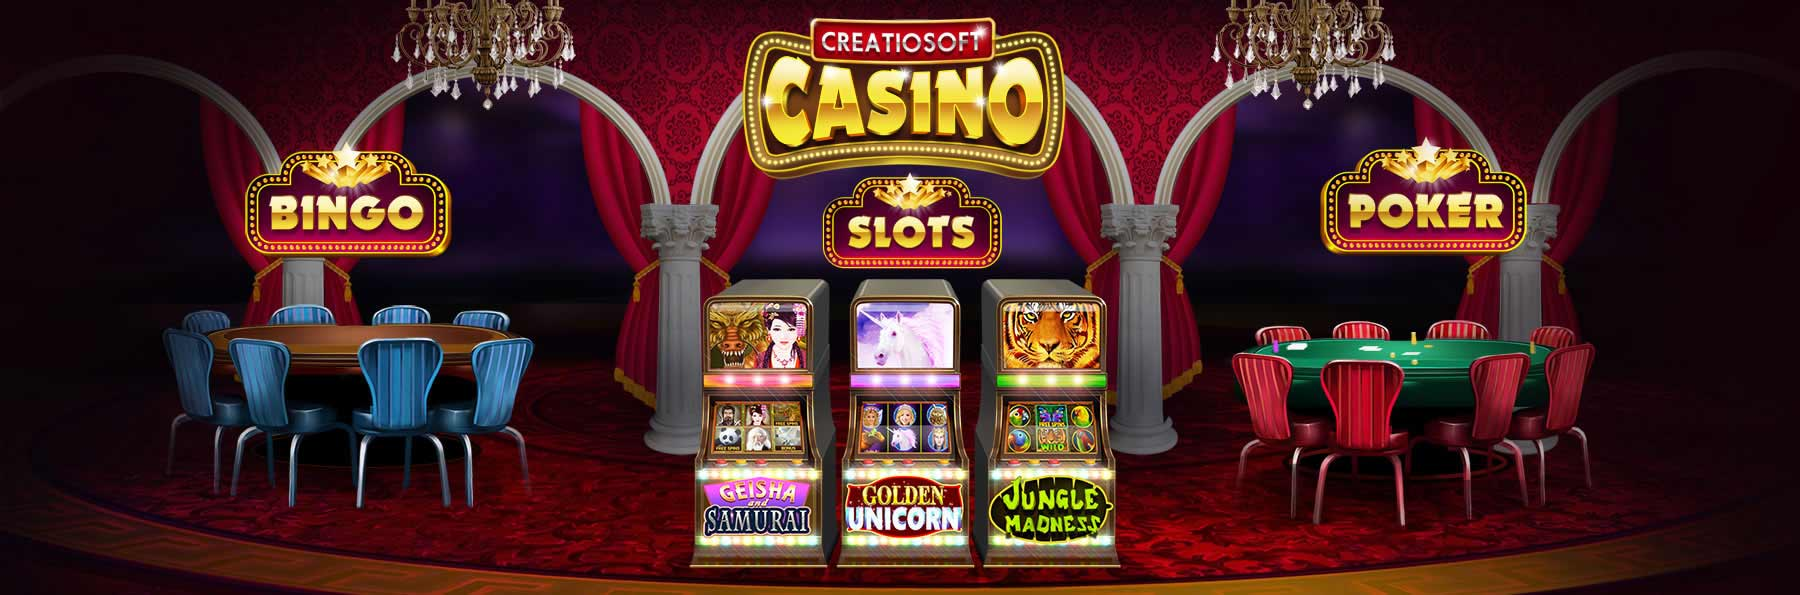 casino-for-website1